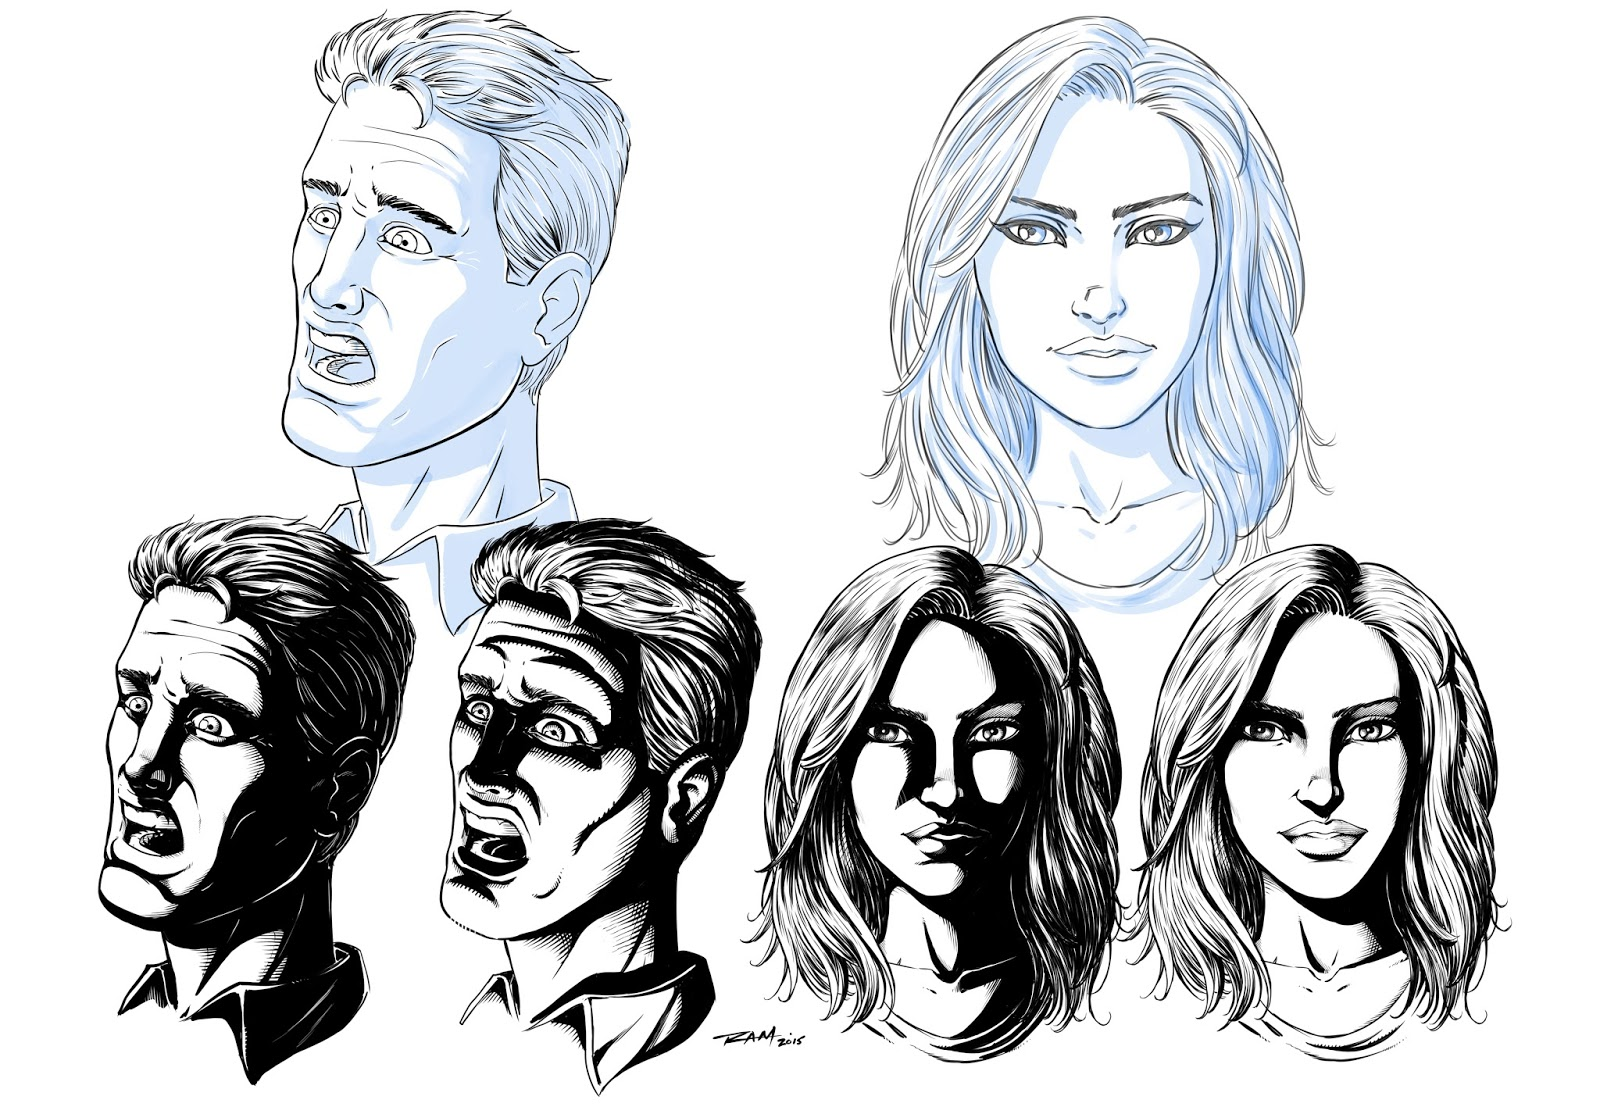 1600x1107 Ram Studios Comics How To Draw Shadows On Comic Book Faces By